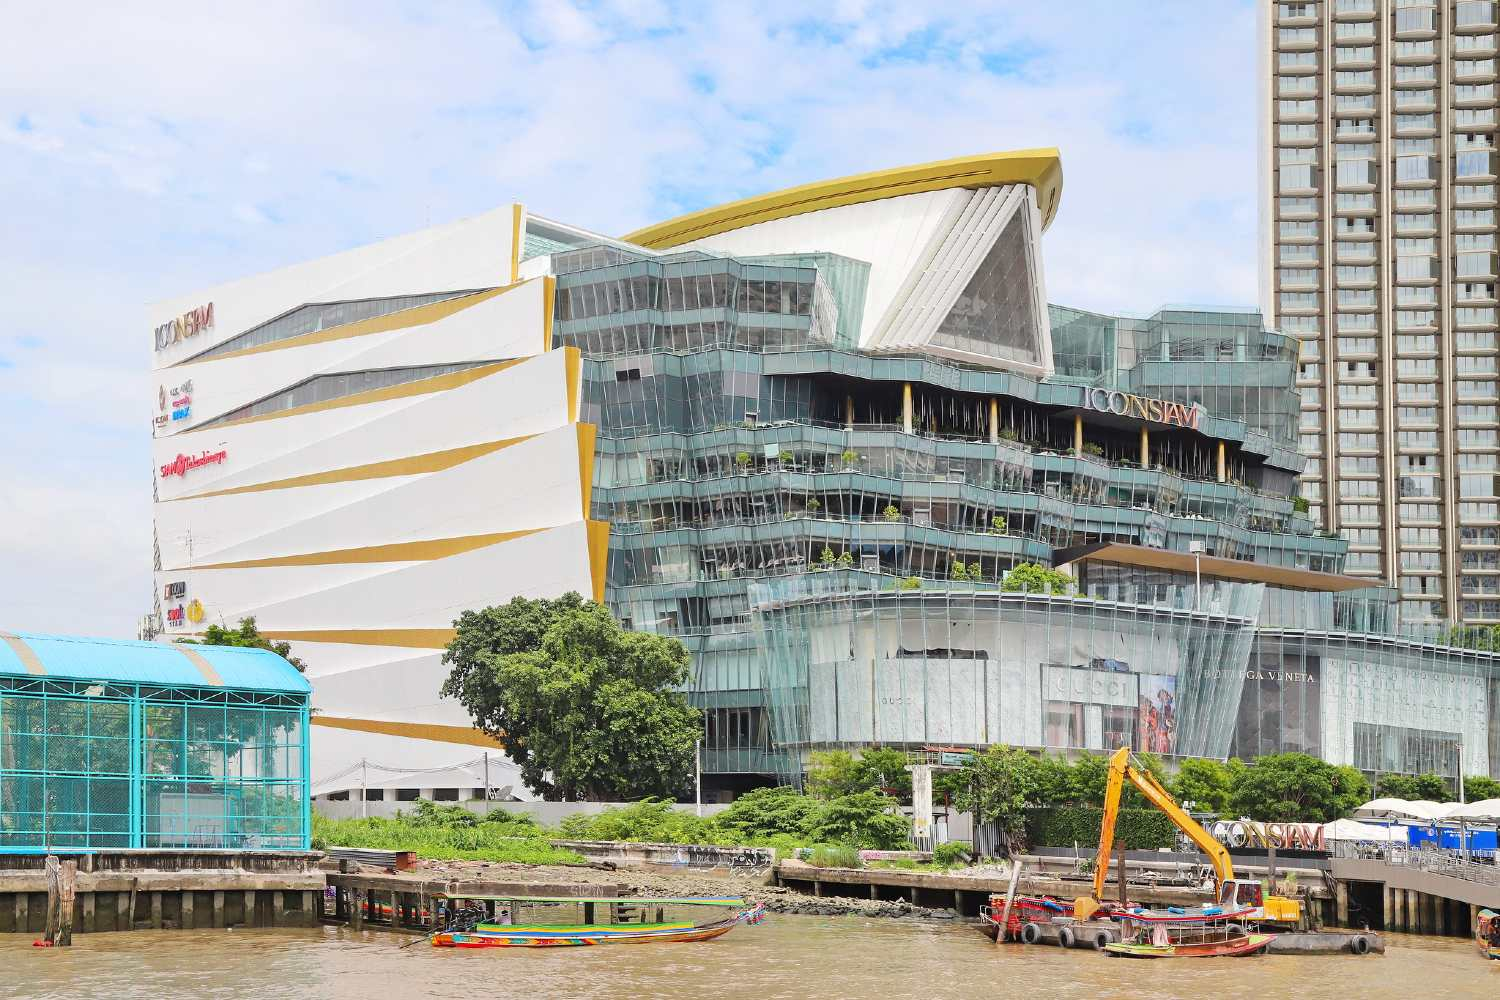 ICONSIAM on the Chao Phraya River in Bangkok seen from above